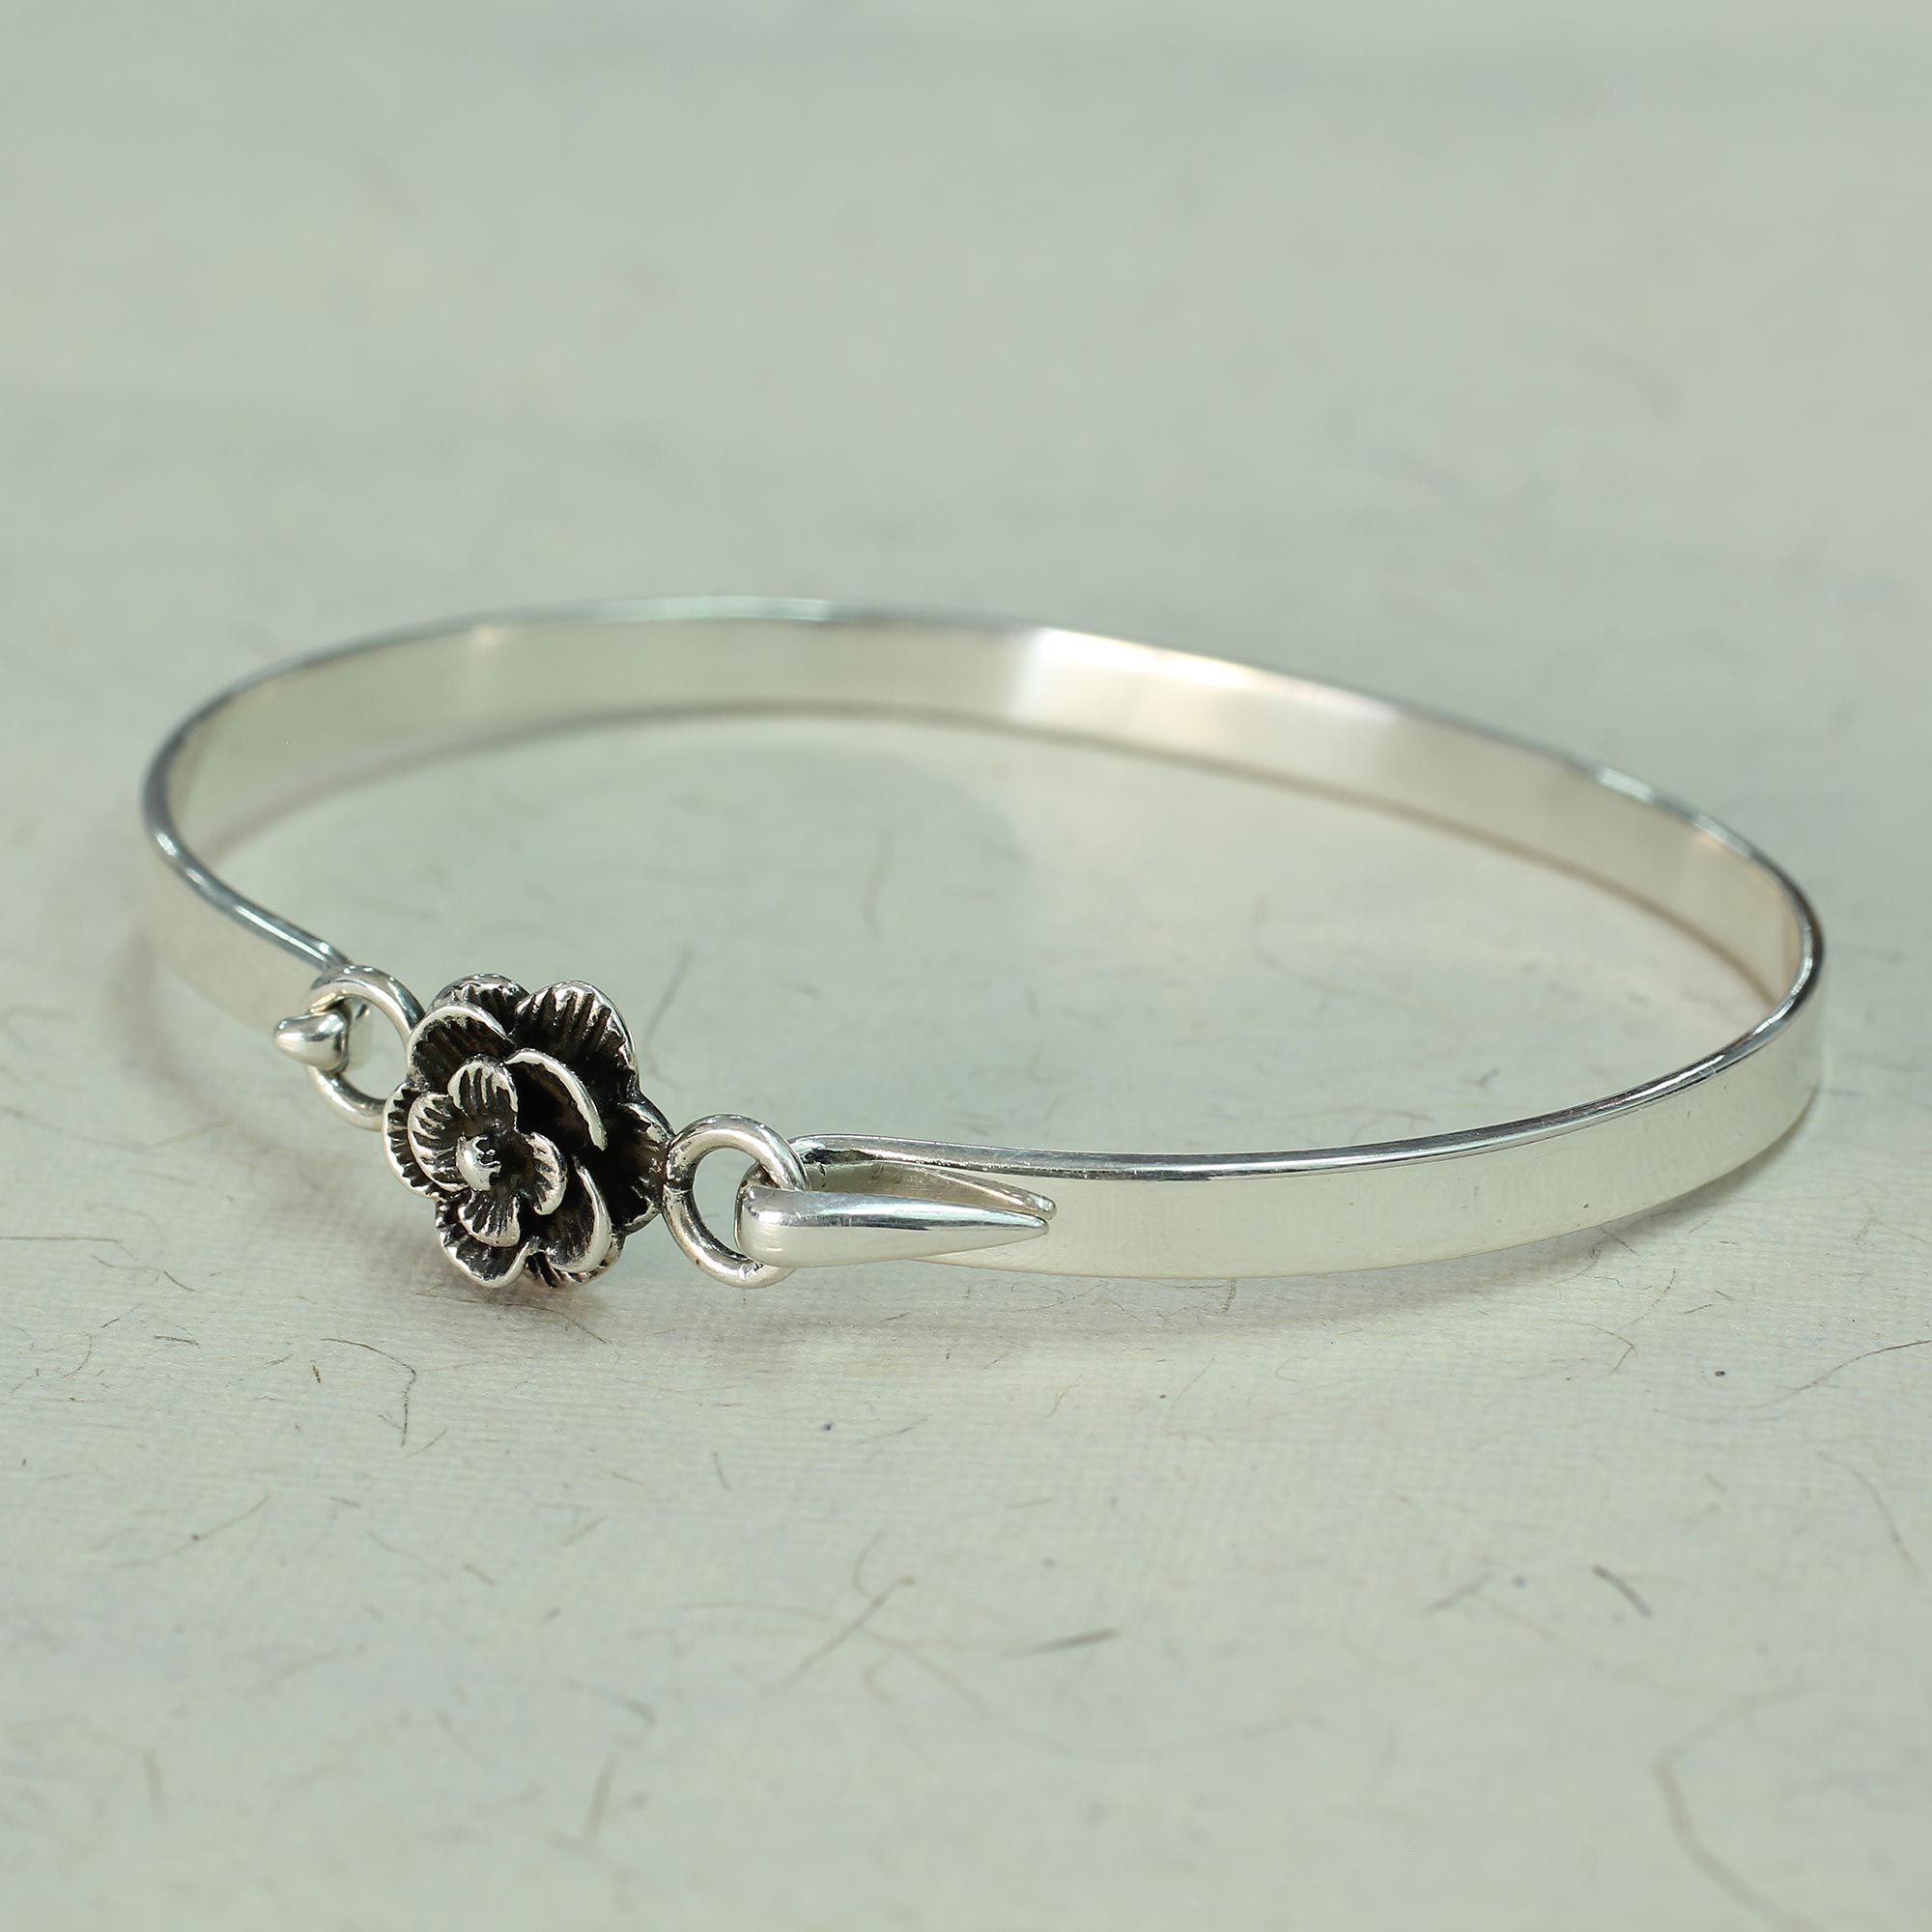 bangles rose bangle made from silver india beauty sterling hand p bracelet bracelets novica